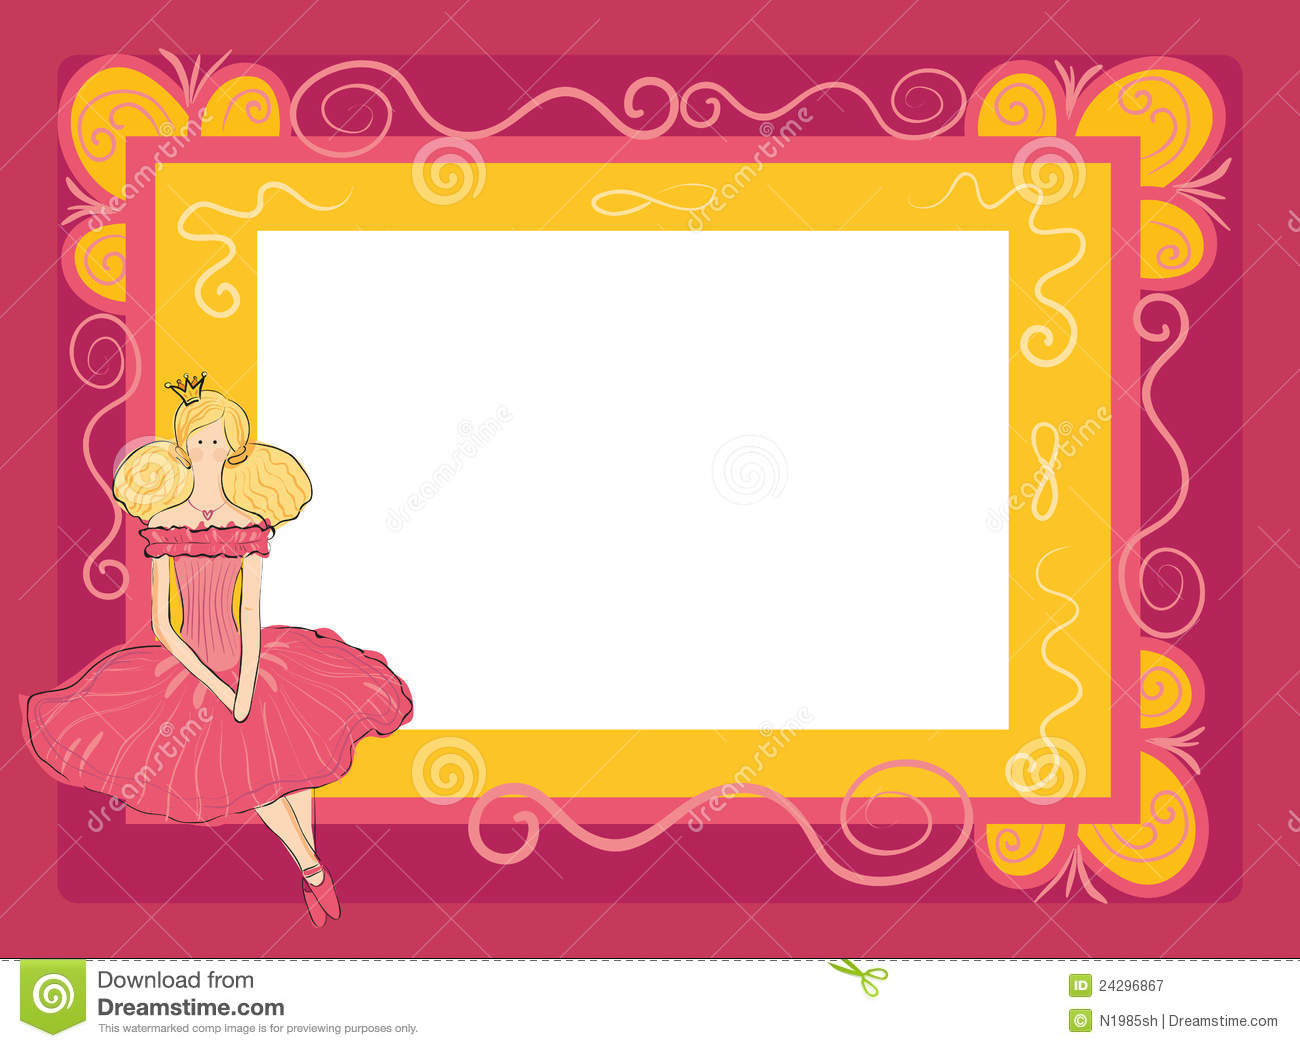 Frame with princess stock illustration. Illustration of fairytale ...